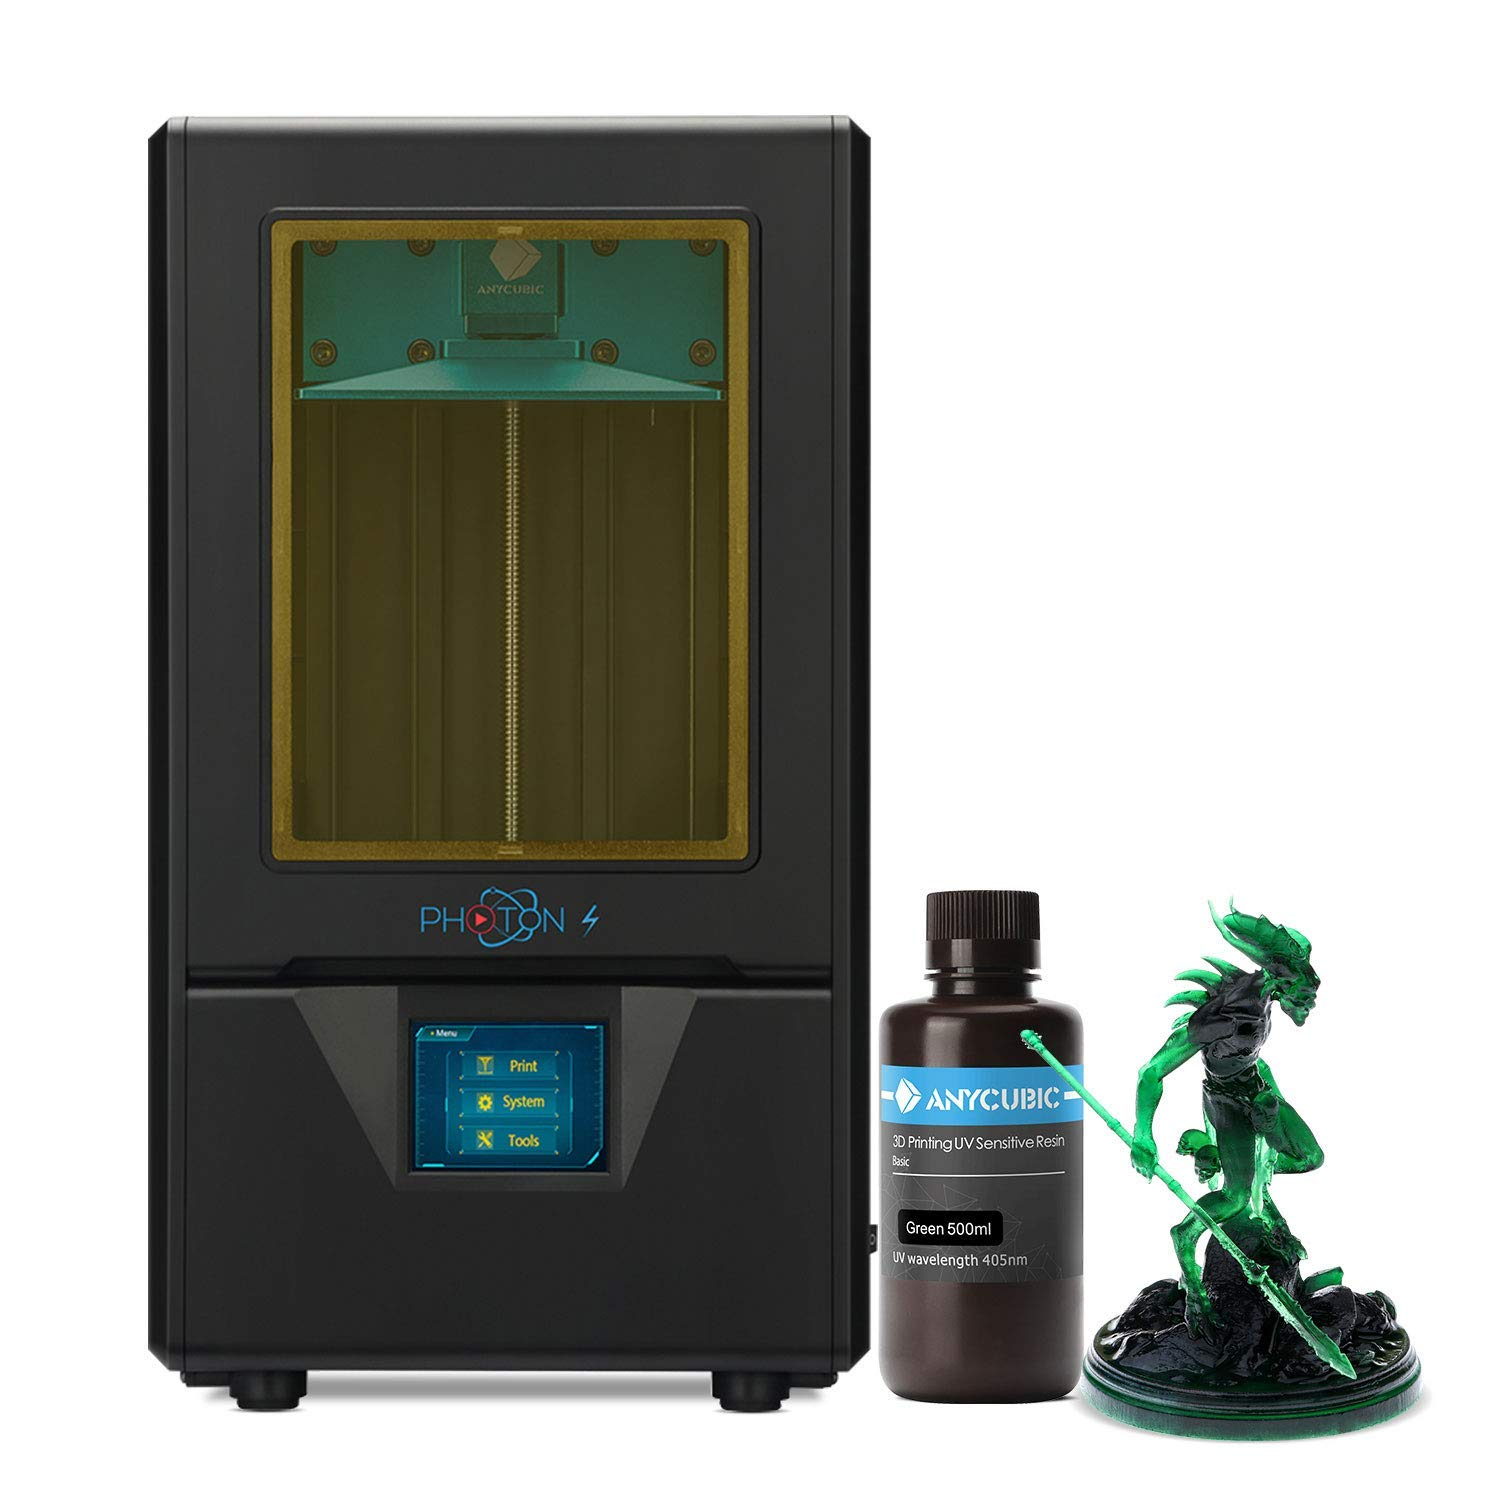 ANYCUBIC Photon S 3D Printer with 500ml Resin, UV LCD Resin Printer with Dual Z-axis Linear Rail, Air Filtering System, 2K Screen & Off-line Printing, Printing Size 4.5